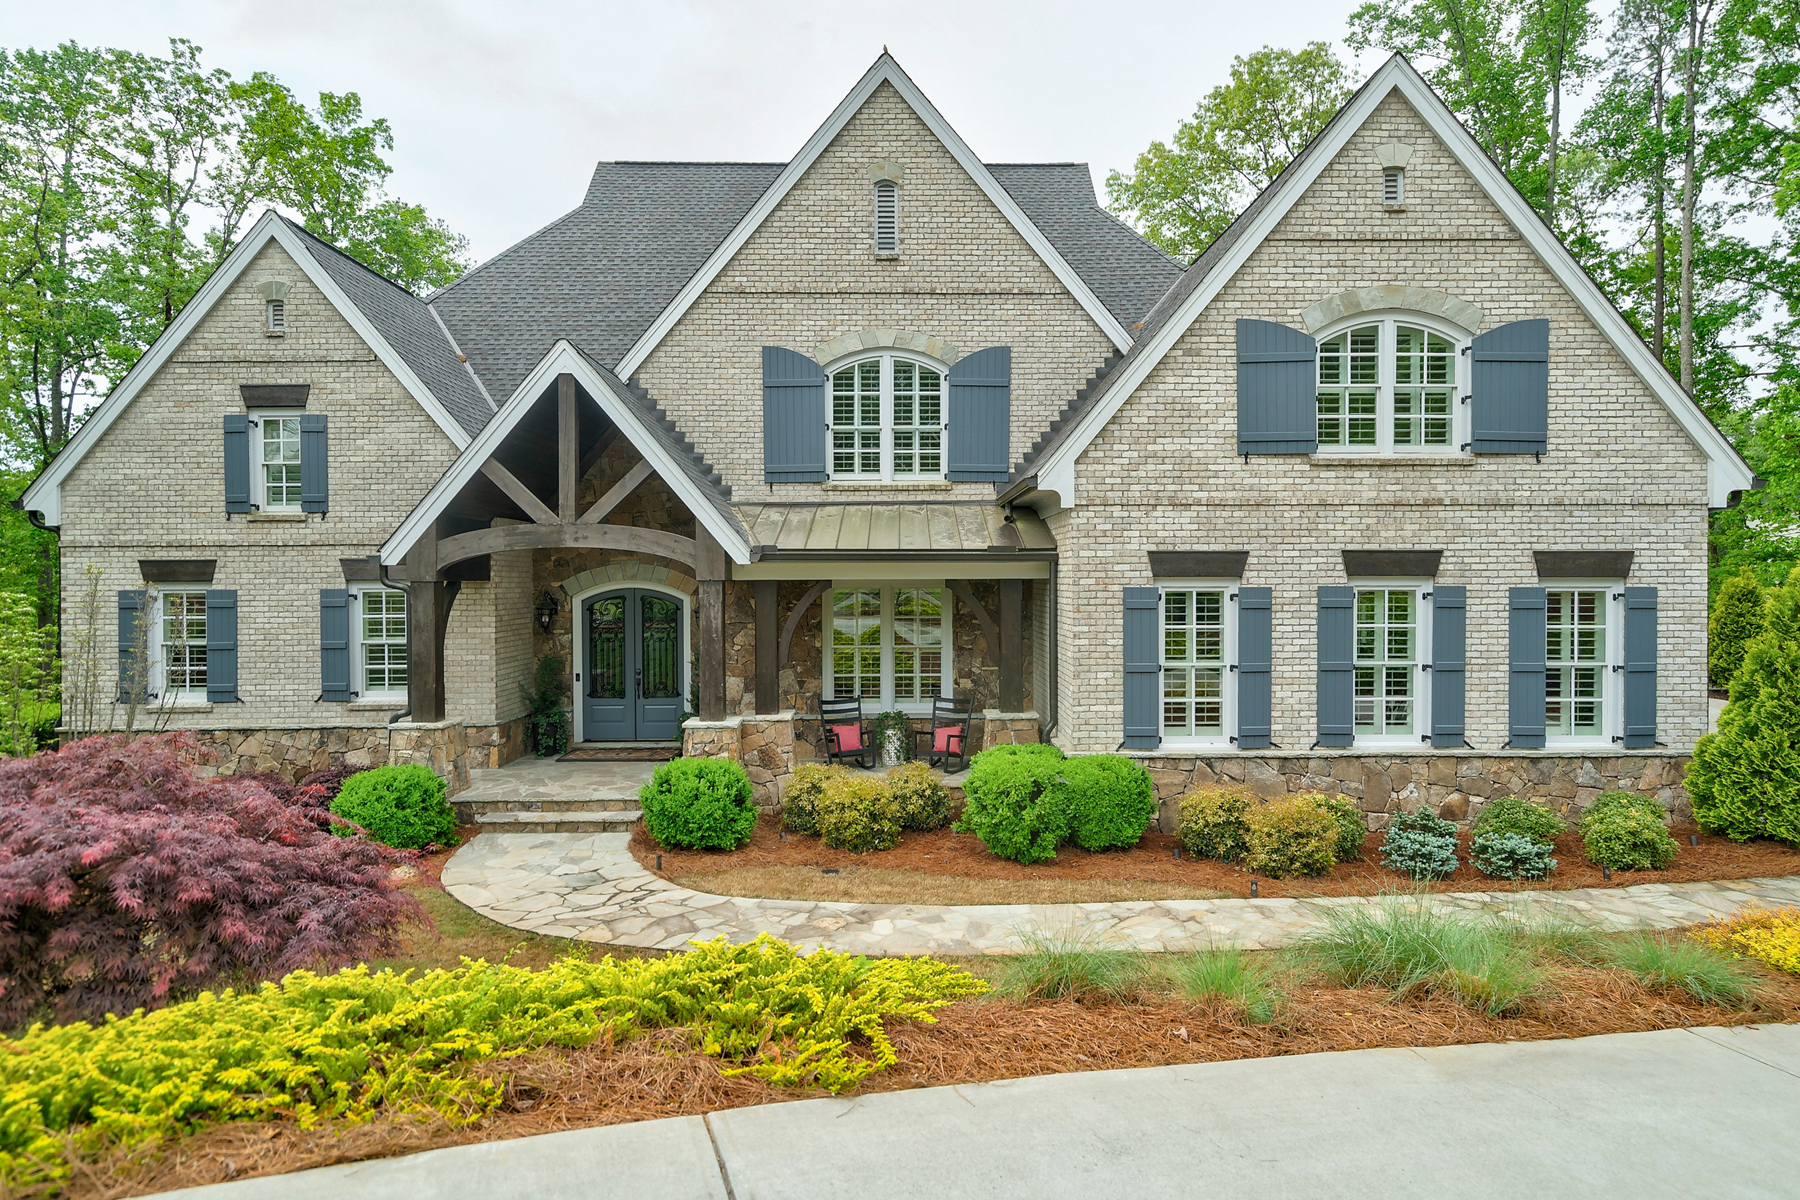 Single Family Homes のために 売買 アット Custom Brick And Stone Home In River Club 4971 Roaring Fork Pass, Suwanee, ジョージア 30024 アメリカ